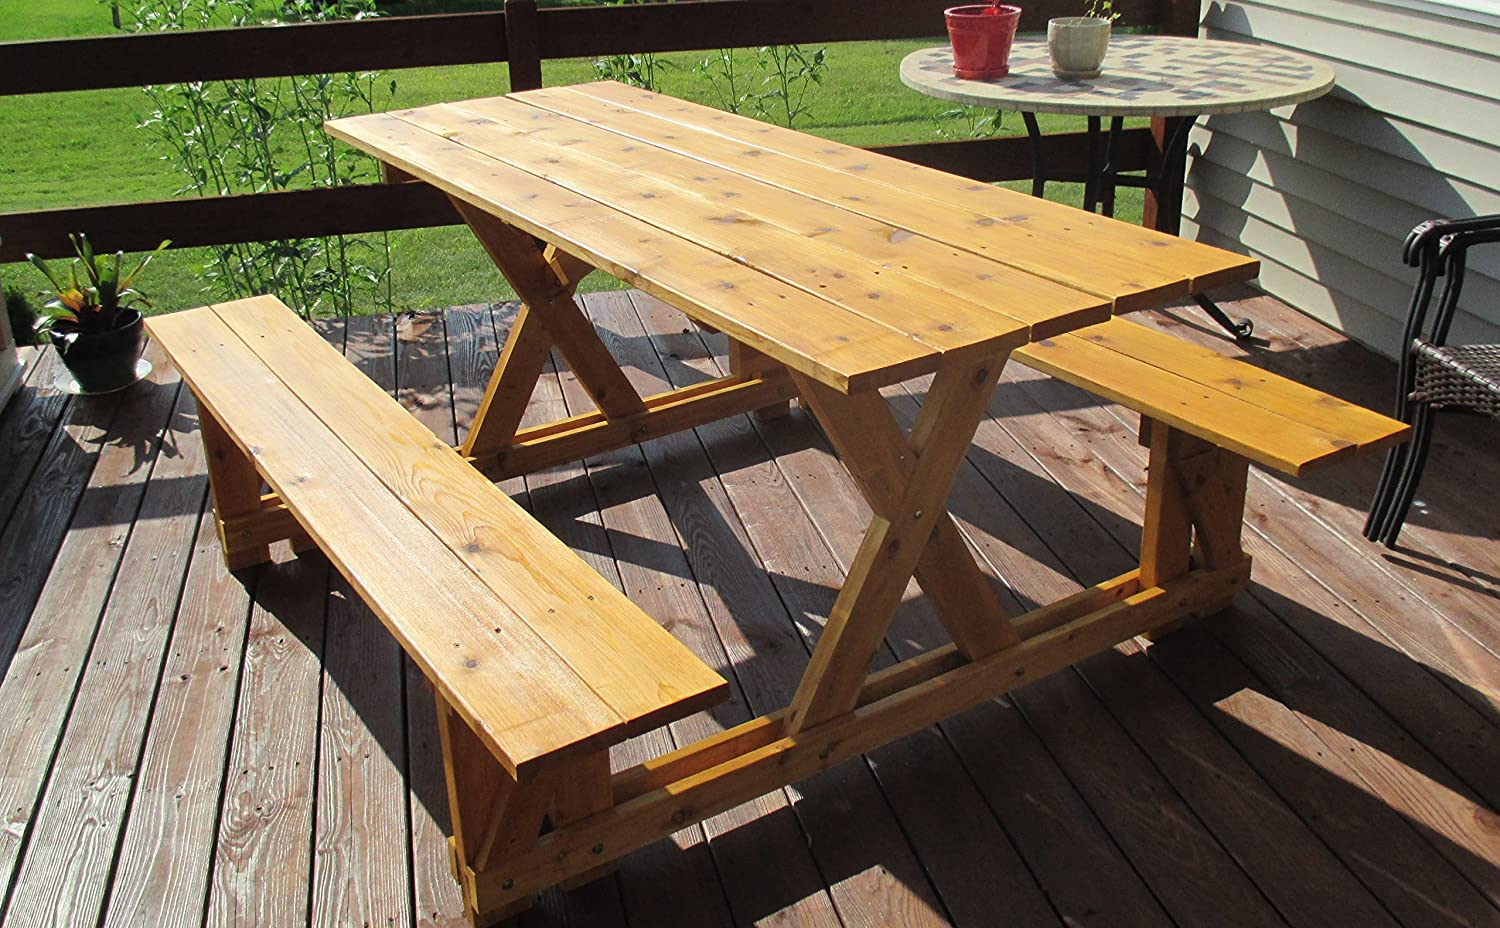 Amazon.com : Infinite Cedar EZ Access Cedar Picnic Table : Garden U0026 Outdoor